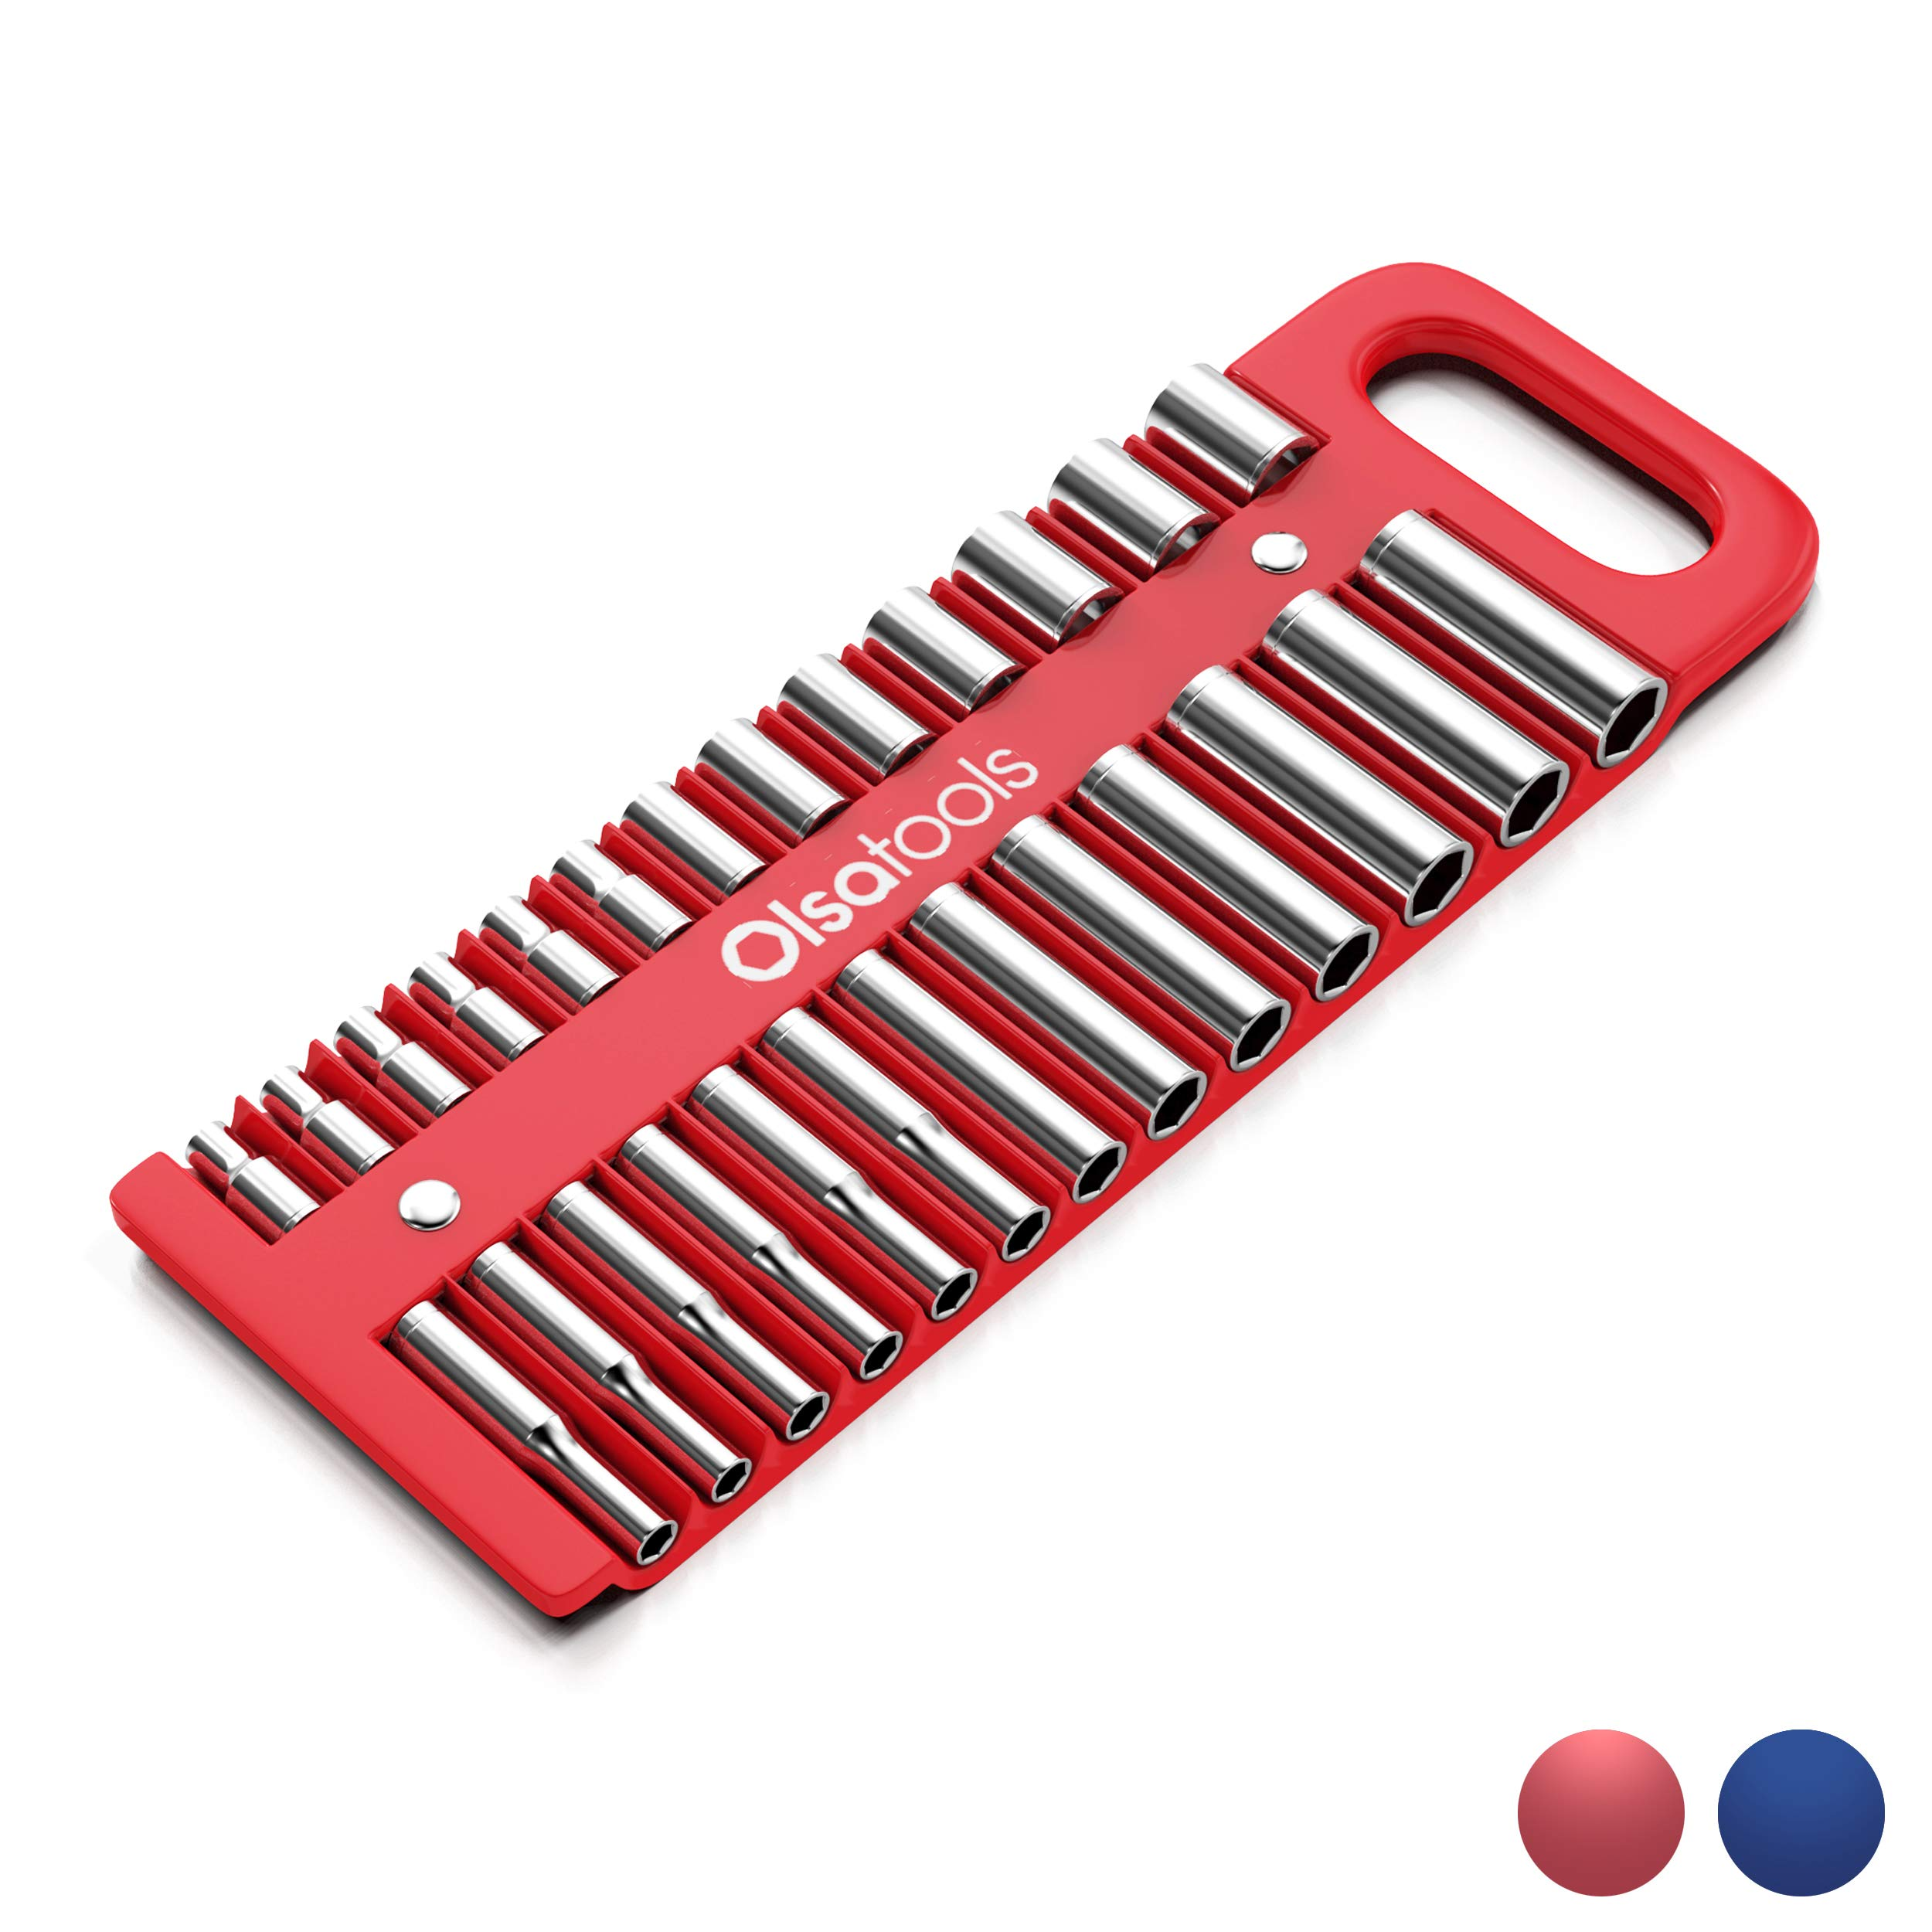 Olsa Tools Magnetic Portable Socket Organizer Tray | 1/4-inch Drive | Red | Fits Deep & Shallow Sockets | Holds sockets up to 5/8'' SAE / 14mm Metric | Premium Quality Tool Organizer by Olsa Tools